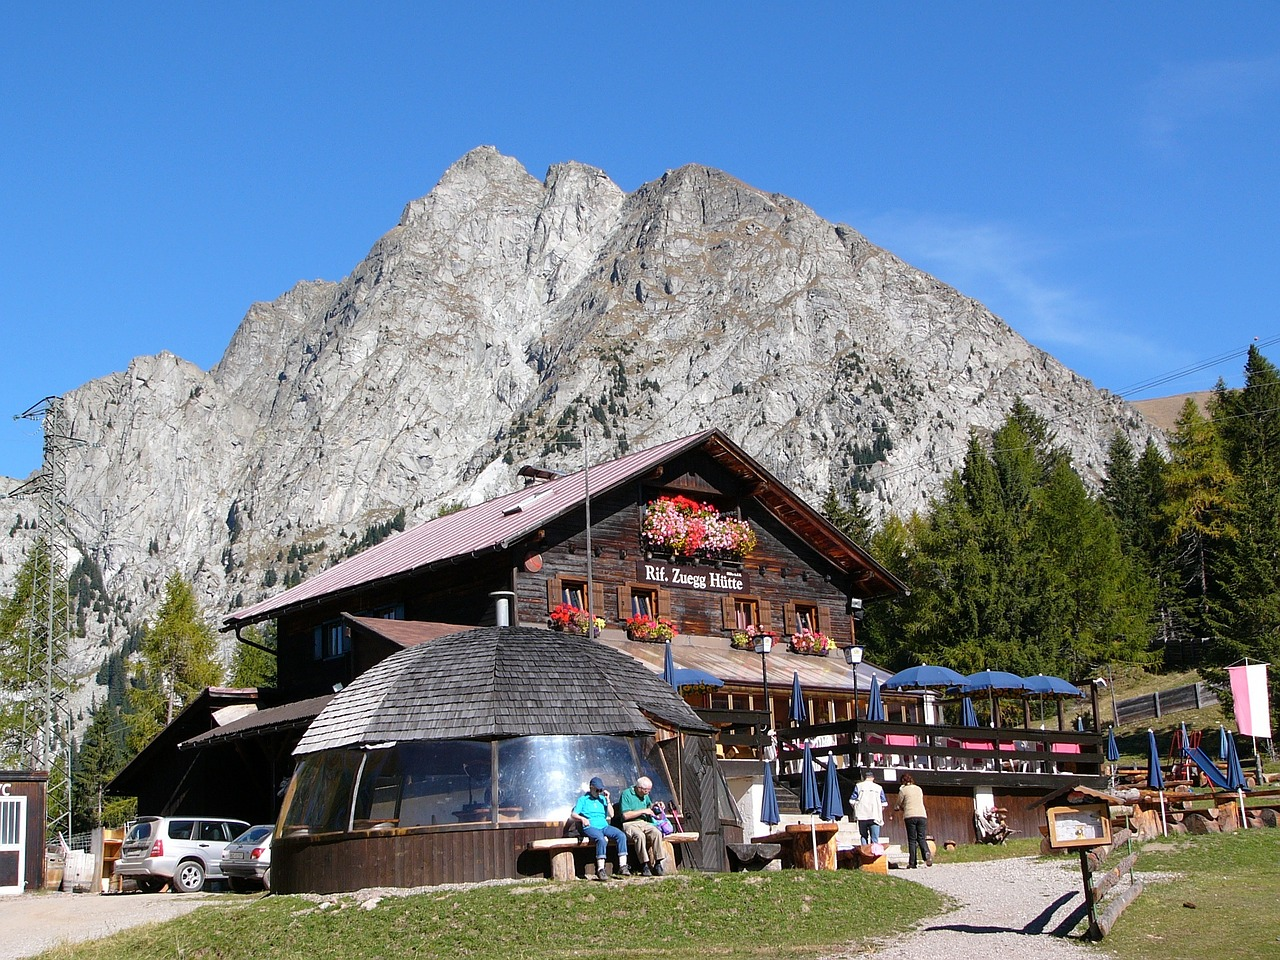 zuegg hut,hut,dolomites,alpine,meran,mountain,nature,alpe,free pictures, free photos, free images, royalty free, free illustrations, public domain